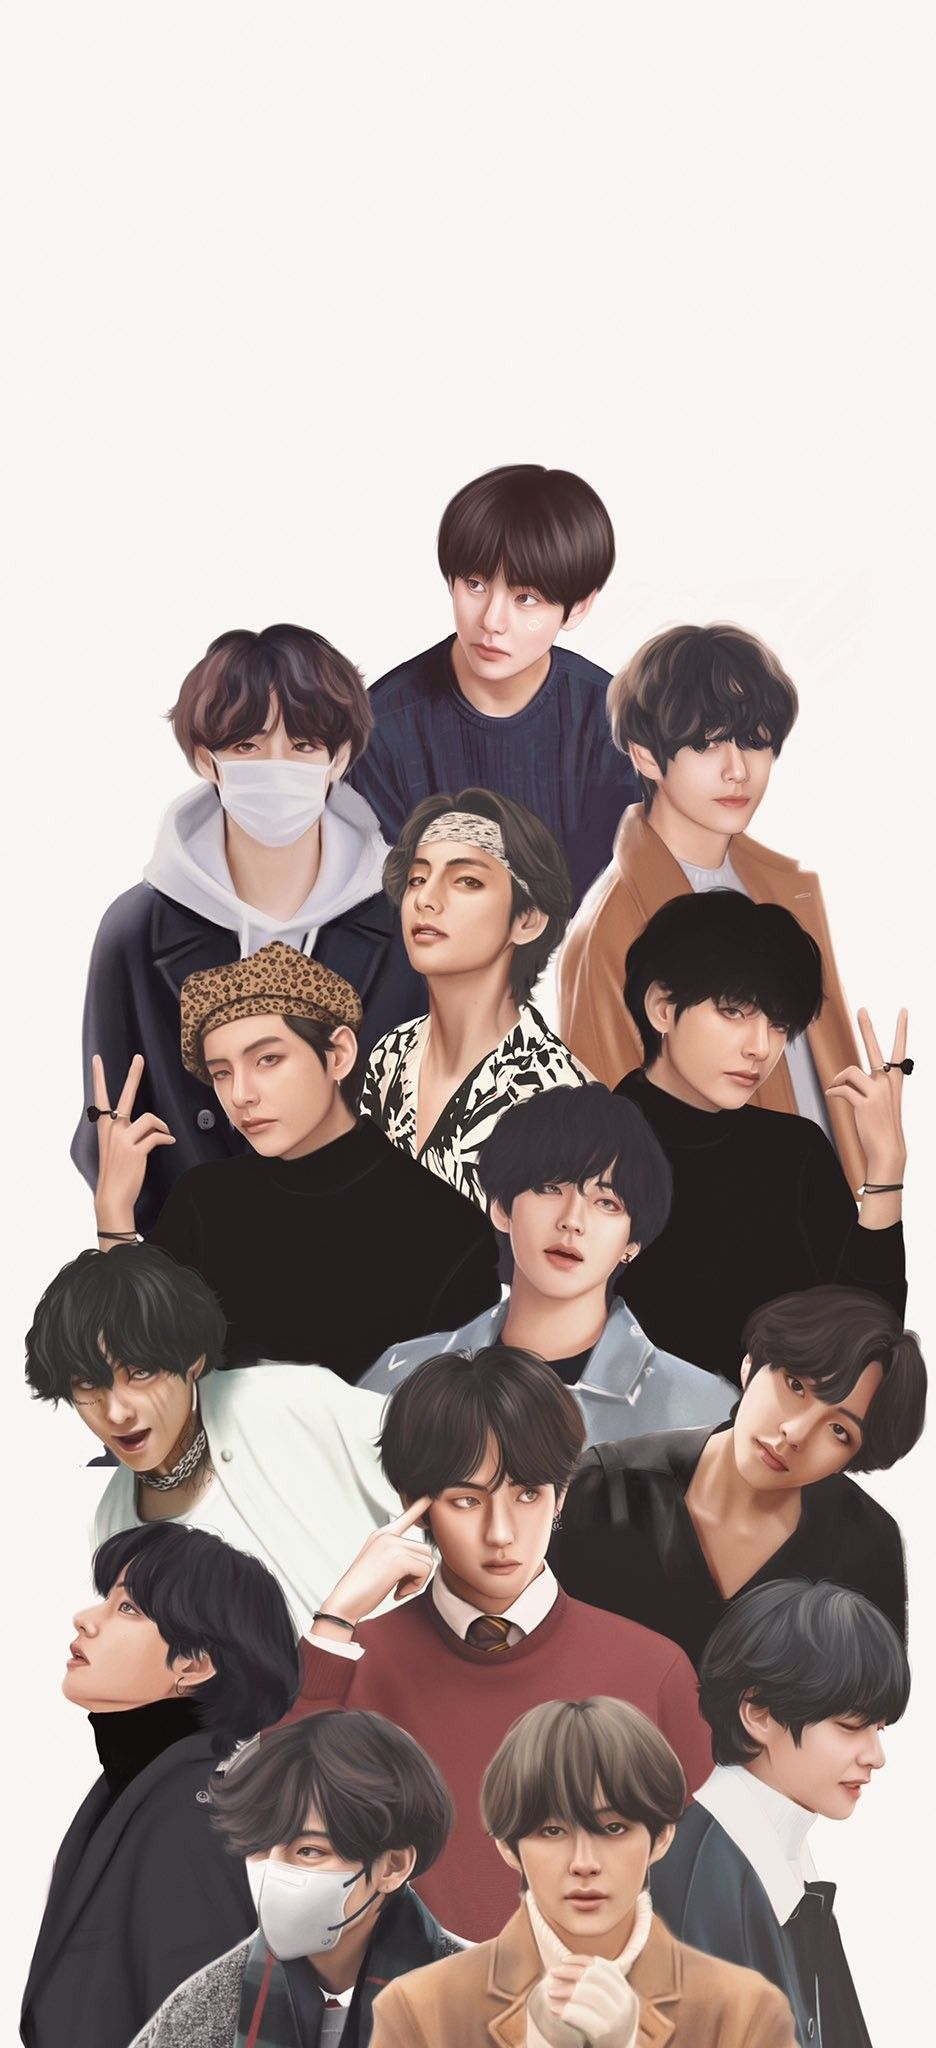 Pin By Brave R On Bts Taehyung Fanart Bts Drawings Bts Fanart